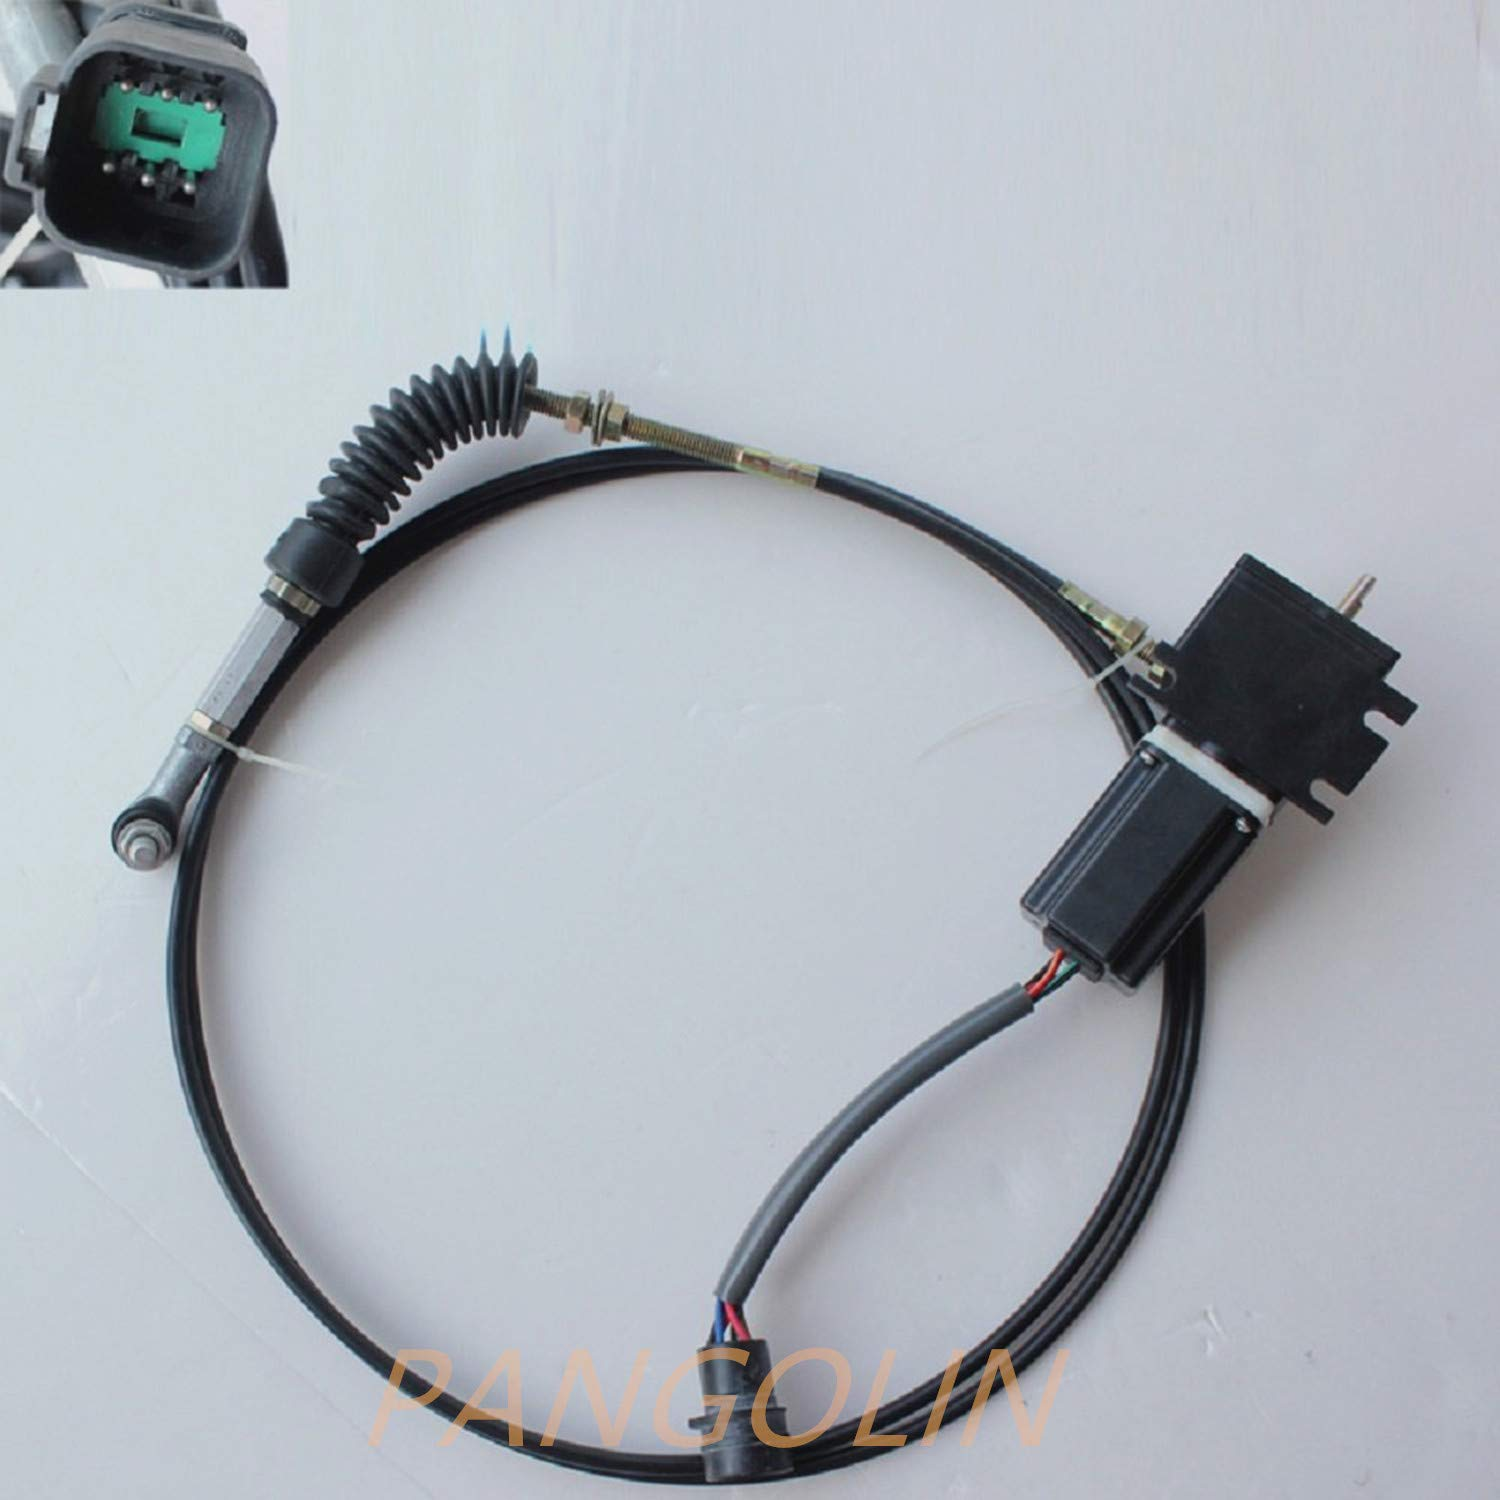 191-6840 1916840 Throttle Motor Governor Assy with Single Cable and 6 Pins for E308C 308C Excavator Speed Gas Accelerator Parts